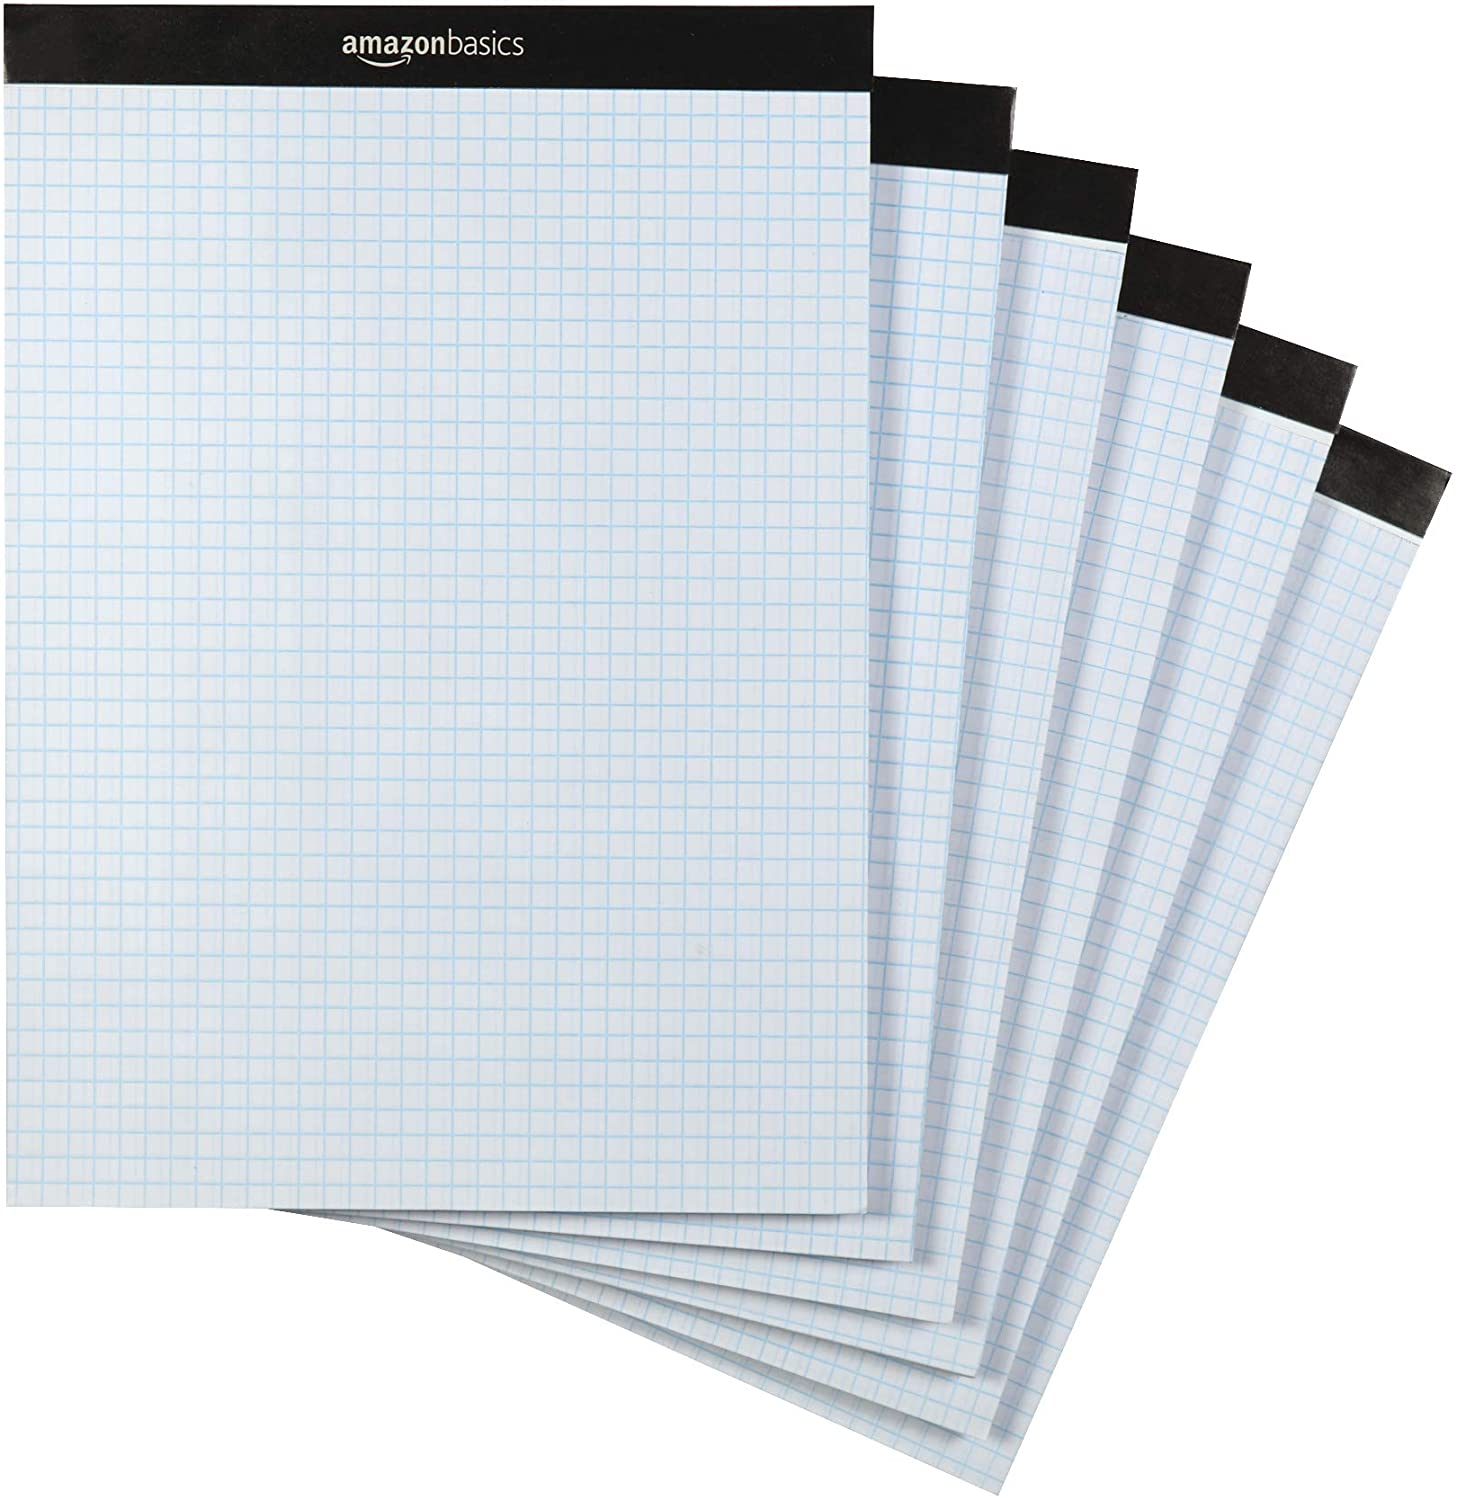 "AmazonBasics Quad Ruled Graph Paper Pad, Letter Size 8.5"" x 11"", 6-Pack"